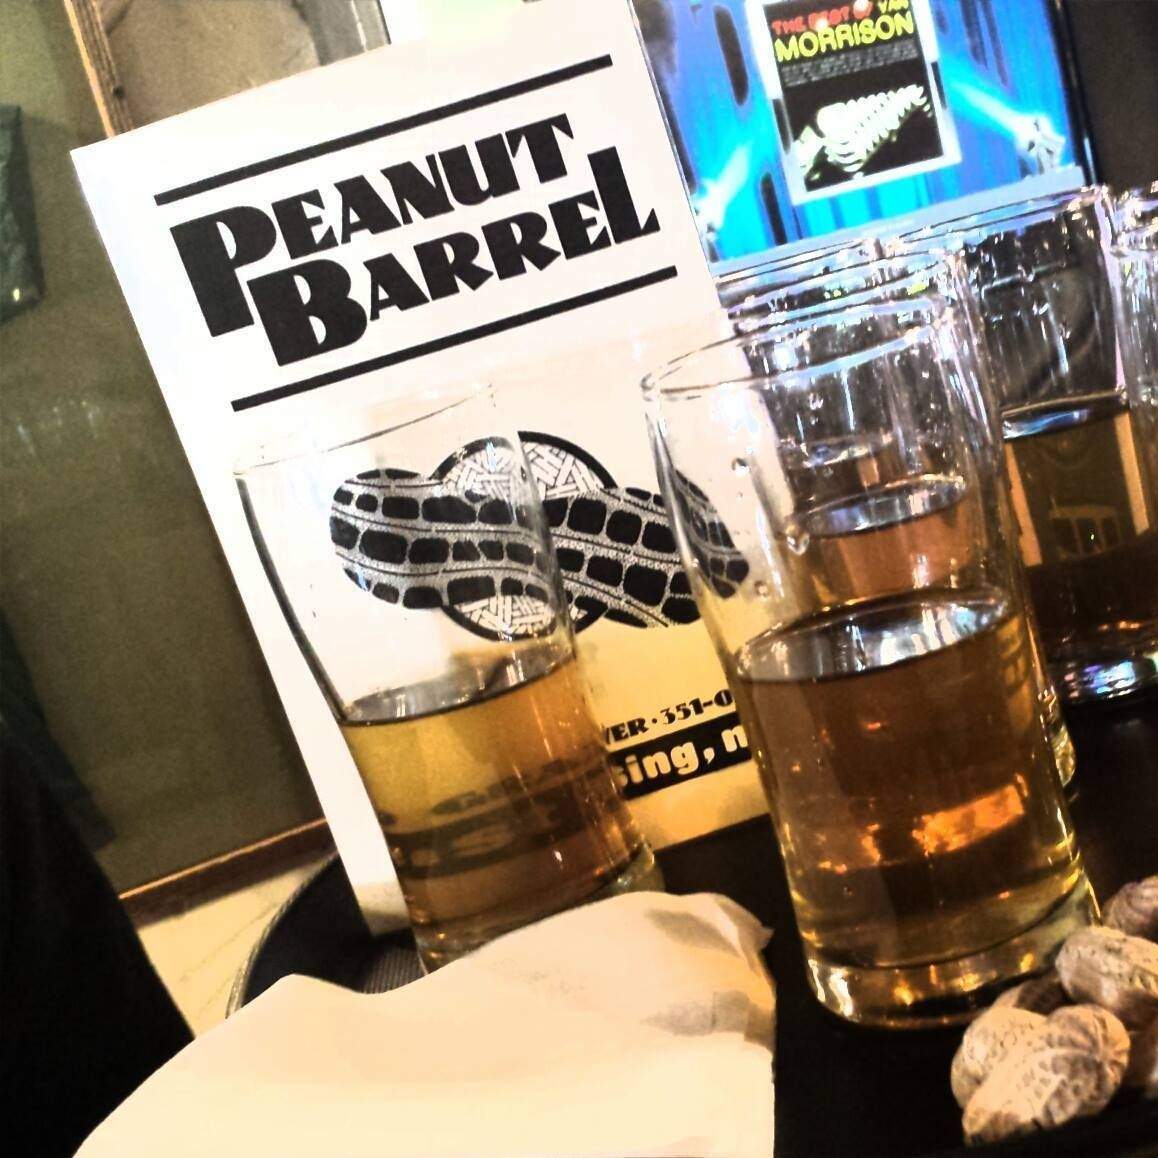 Peanut Barrel - East Lansing, MI